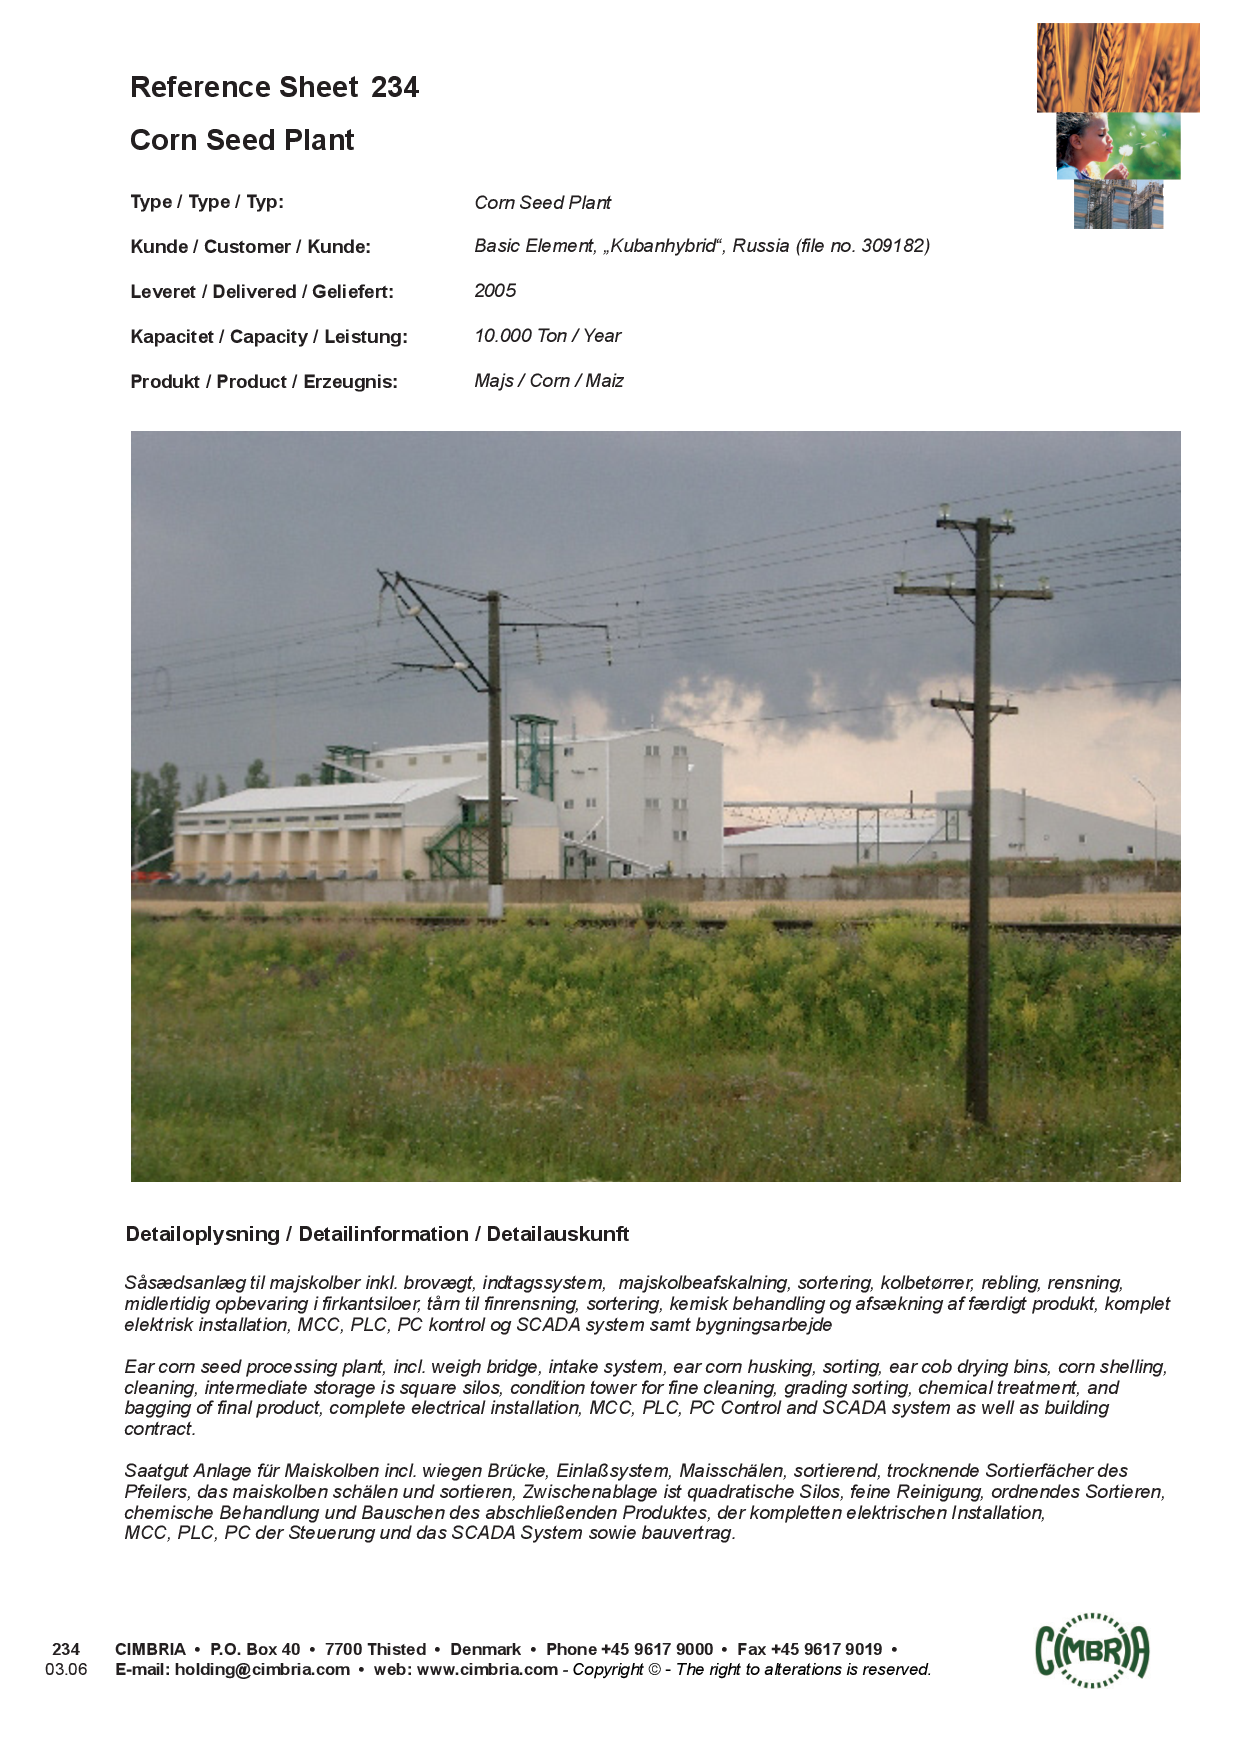 Reference Sheet 234 Corn Seed Plant